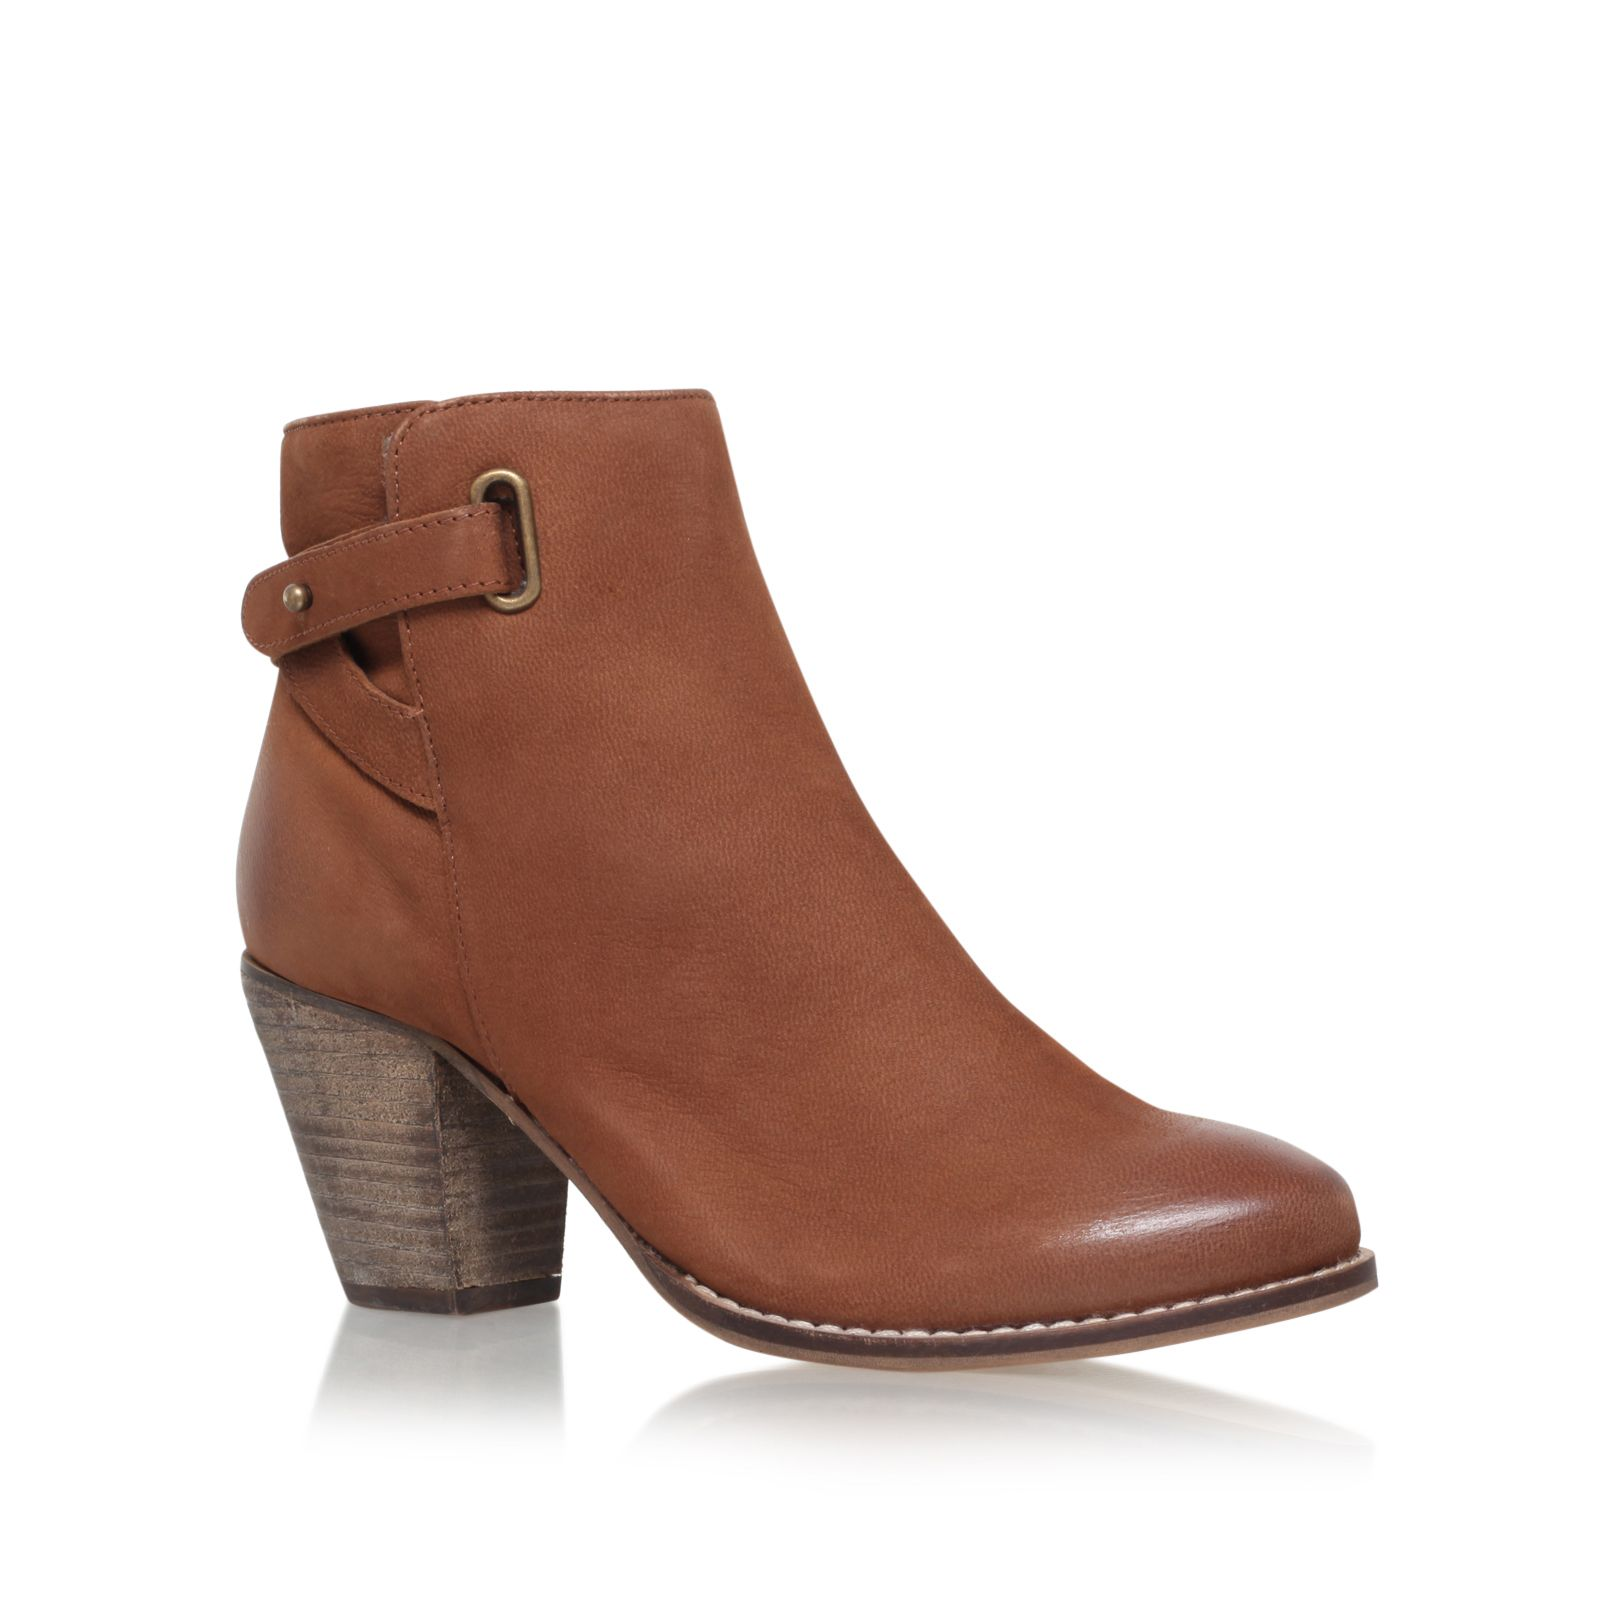 Carvela Smart high heel ankle boots ...